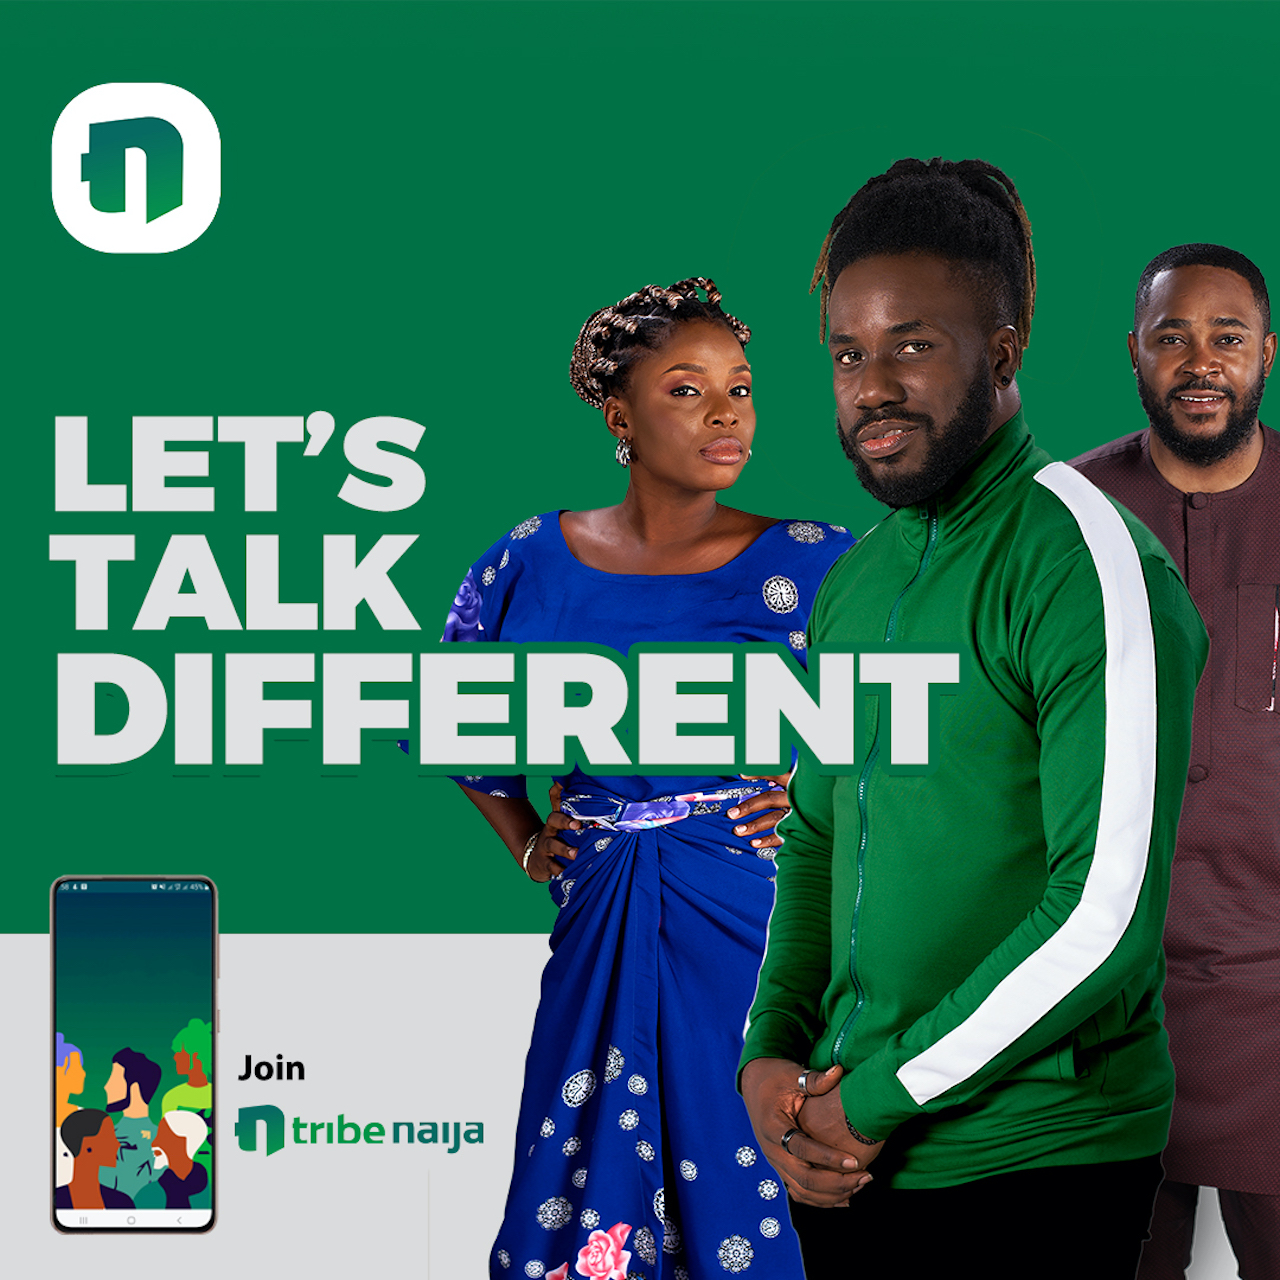 Tribe Naija App: The latest tribe in town